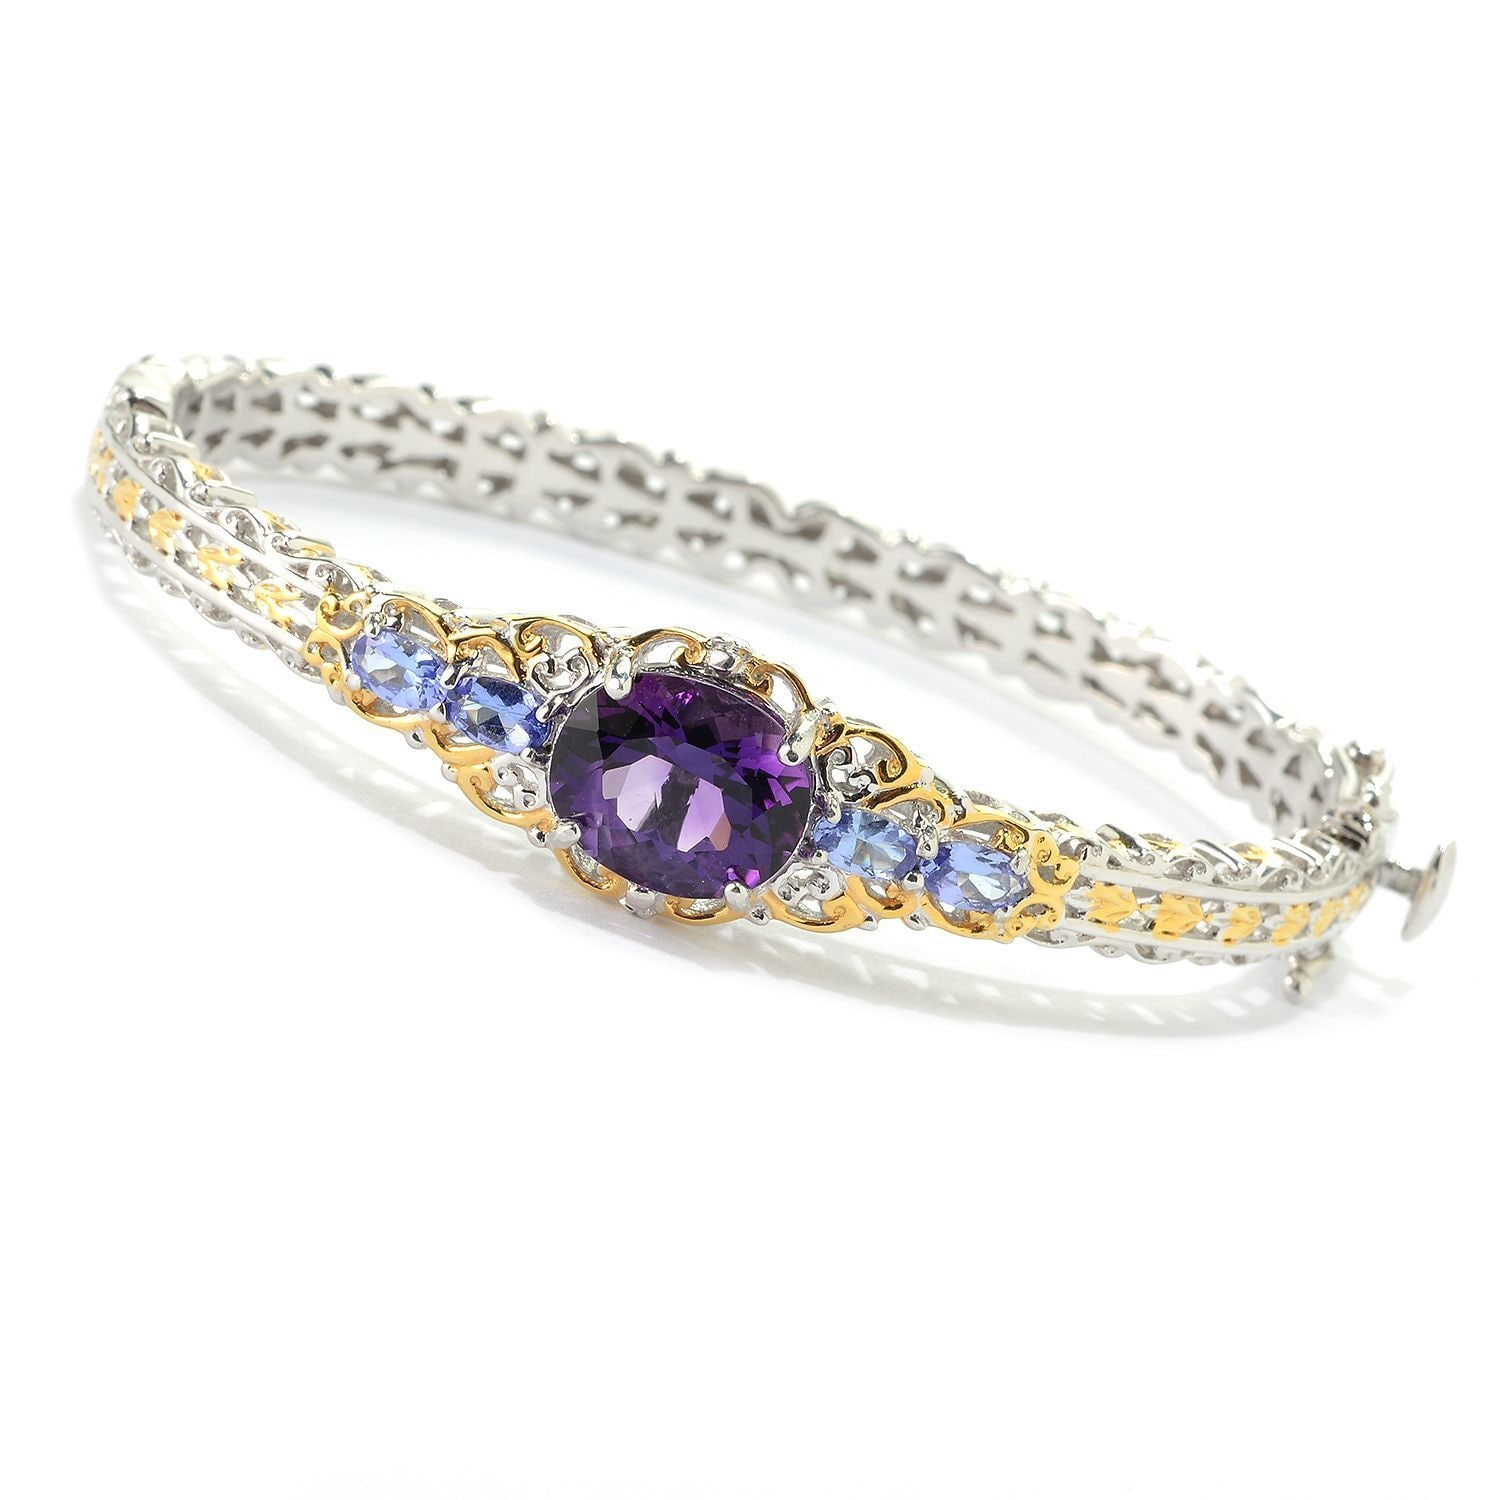 rocks glitzy shipping product silver overstock today jewelry free watches bracelet tanzanite sterling row